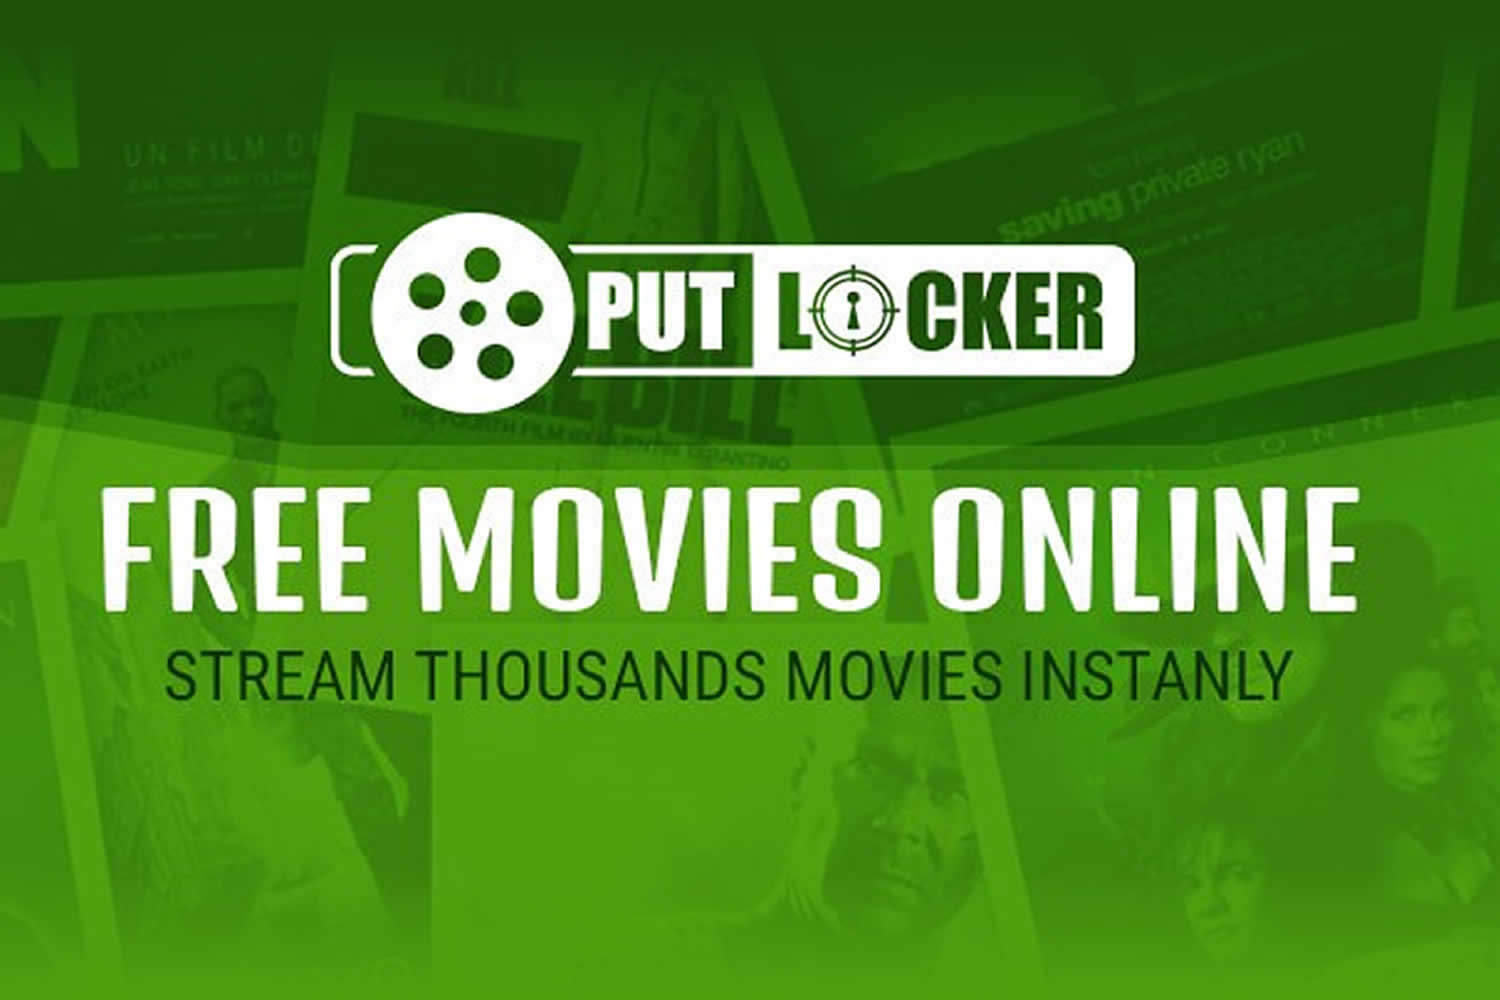 Watch Jigoku bana Putlocker Movies